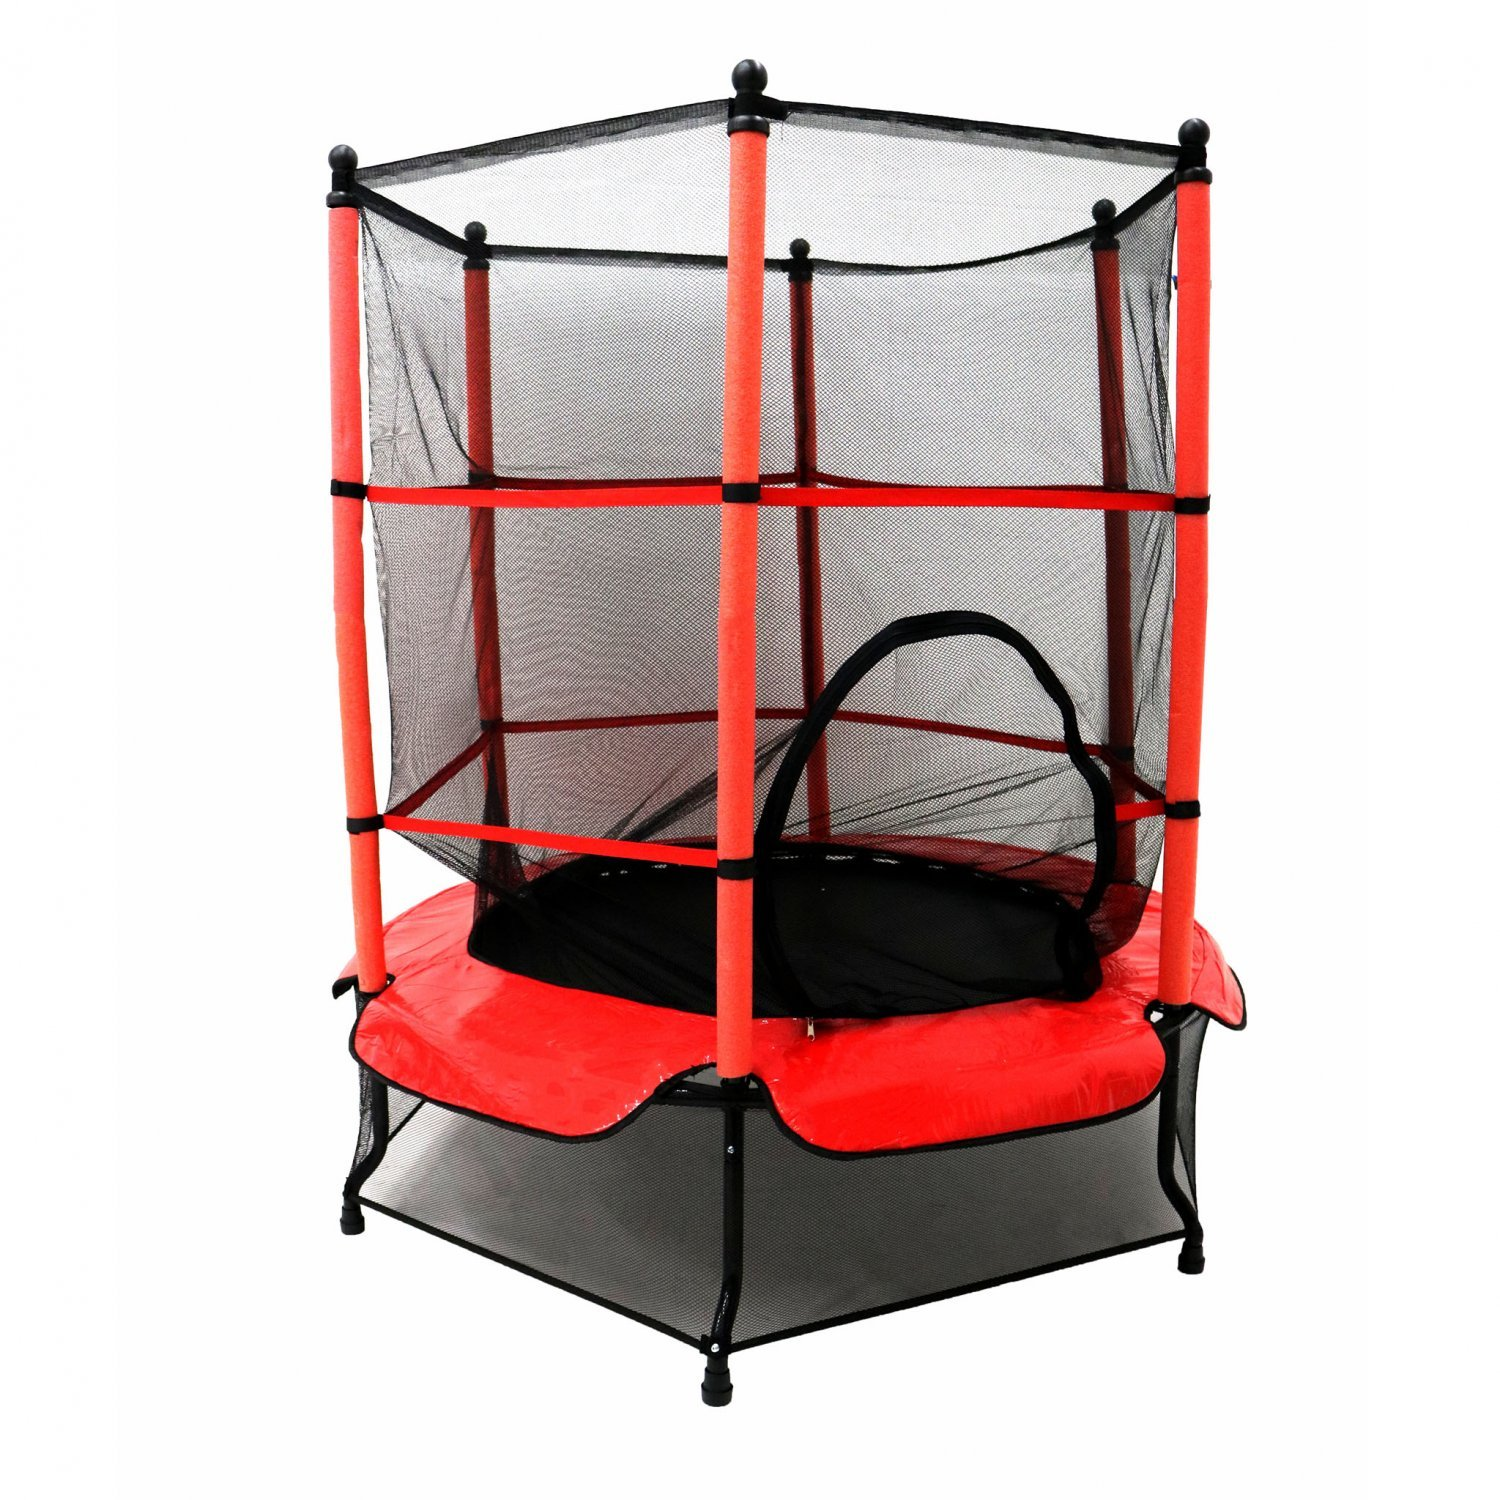 Kid Trampoline Lafayette: 55 Kids Trampoline With Safety Net And Red Cover Garden